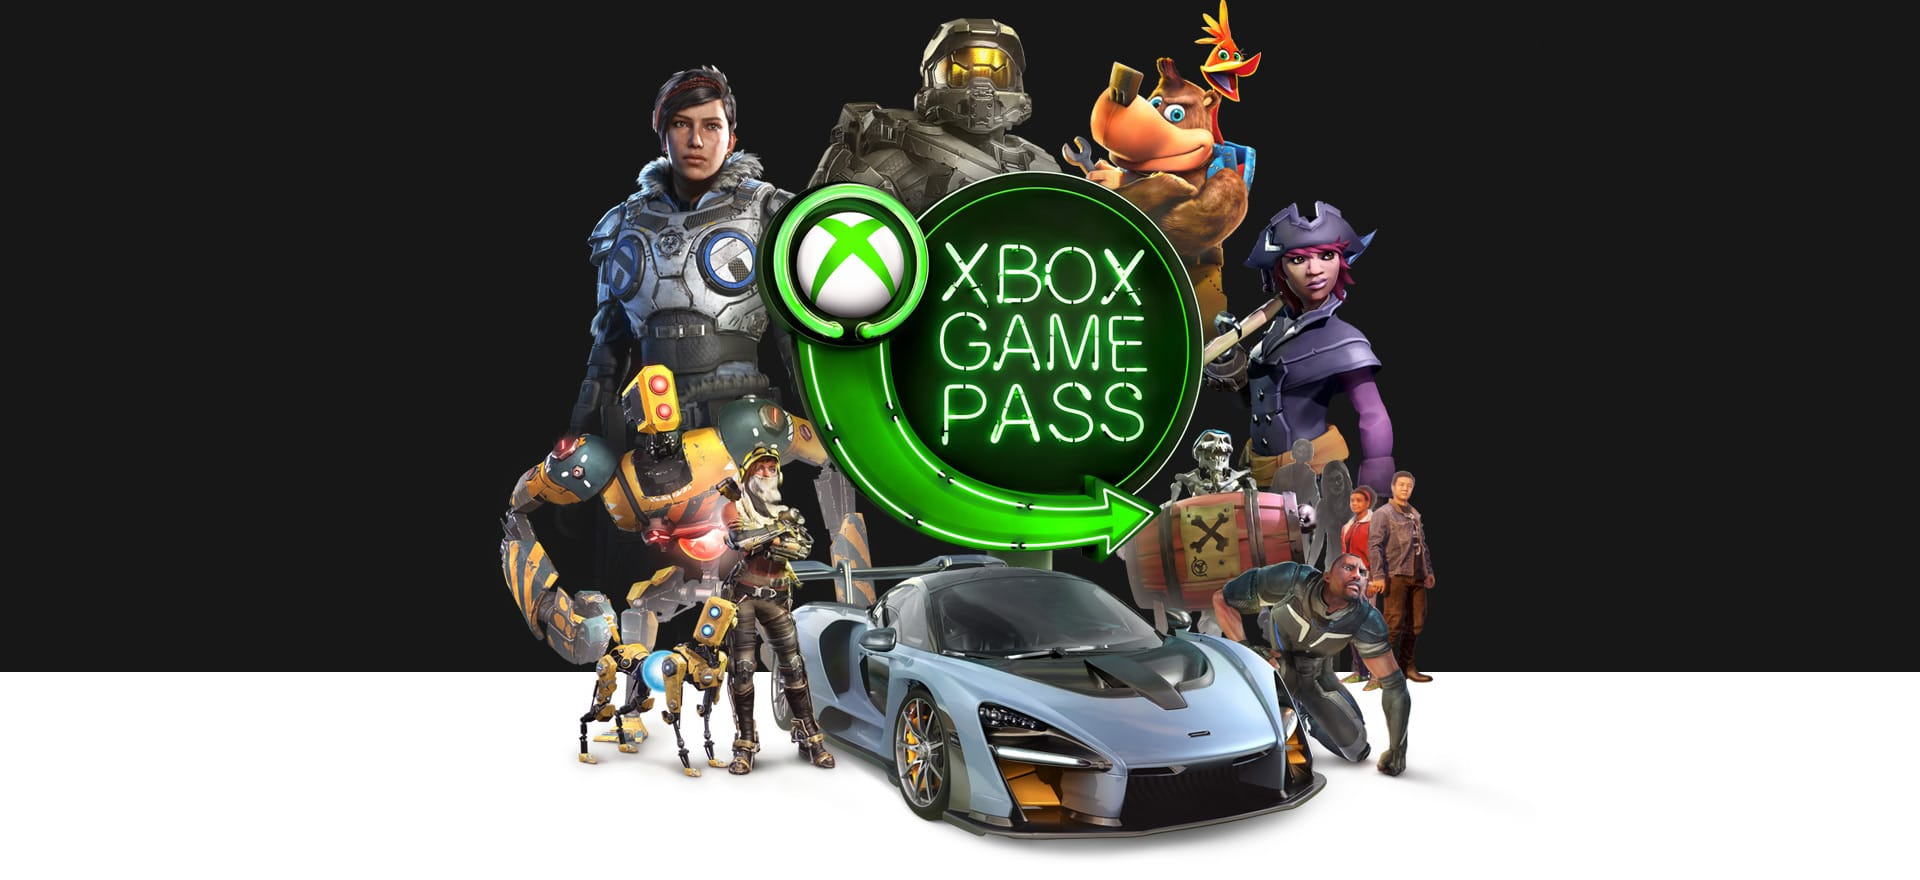 Collage van gamepersonages rond het bordje van de Game Pass.